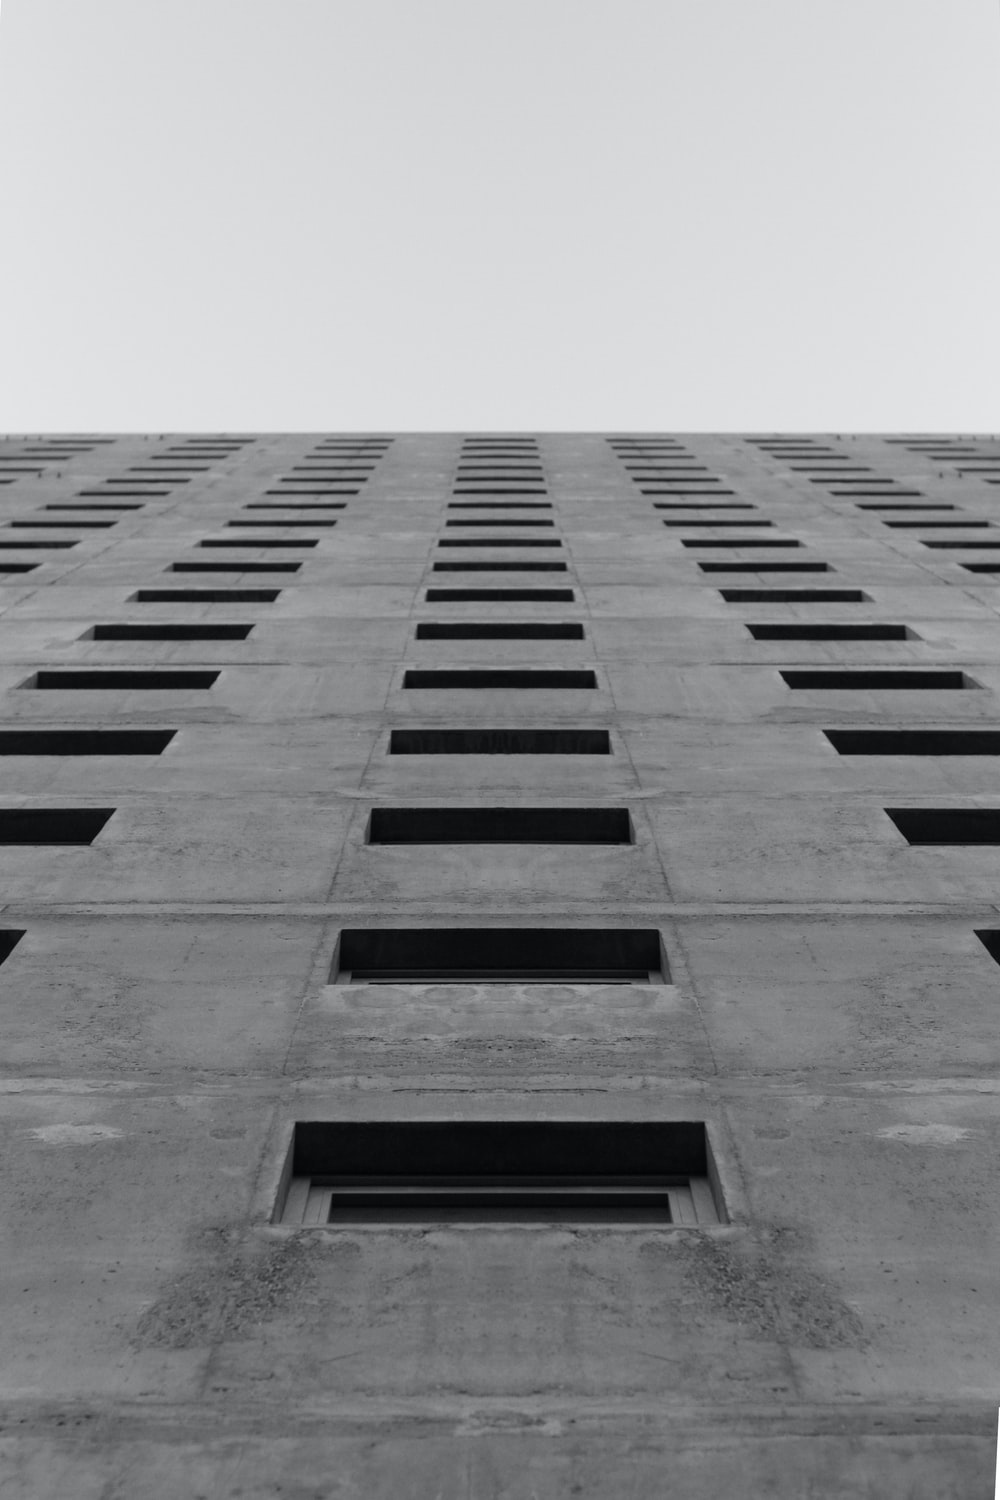 low-angle photography of concrete building at daytime